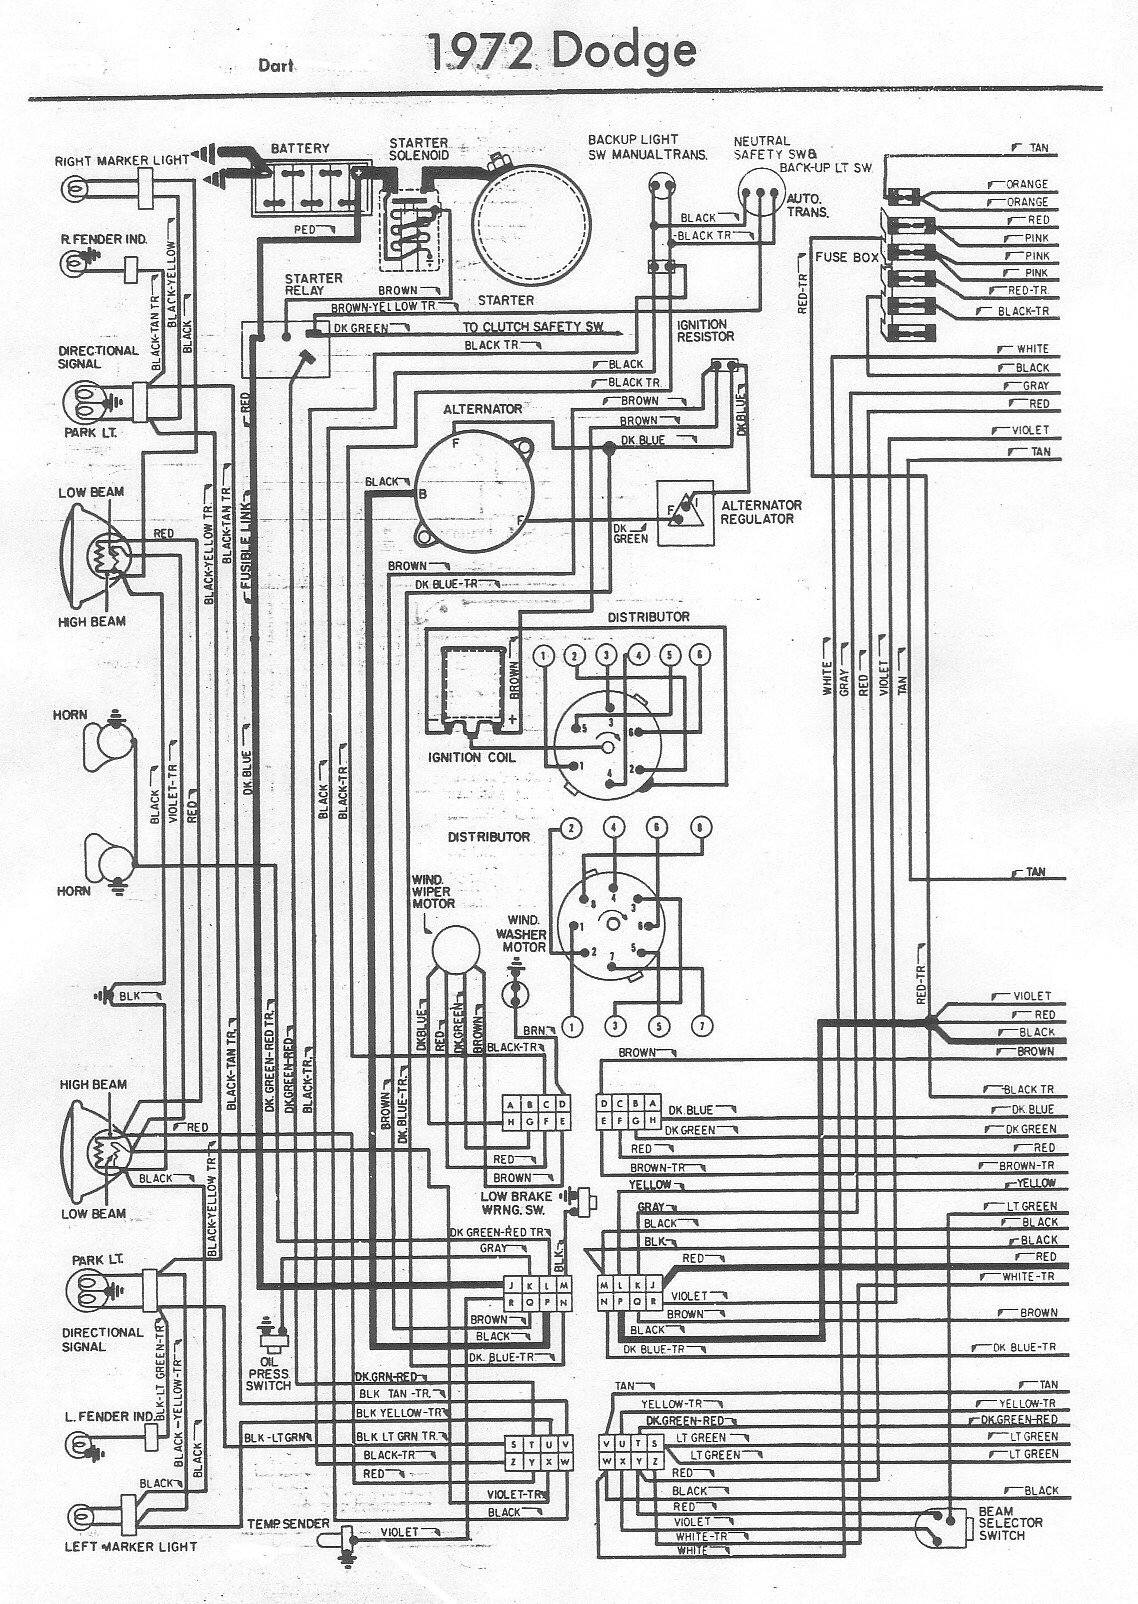 hight resolution of 1972 dodge demon wiring diagrams basic electronics wiring diagram 1970 dodge truck wiring diagrams most searched